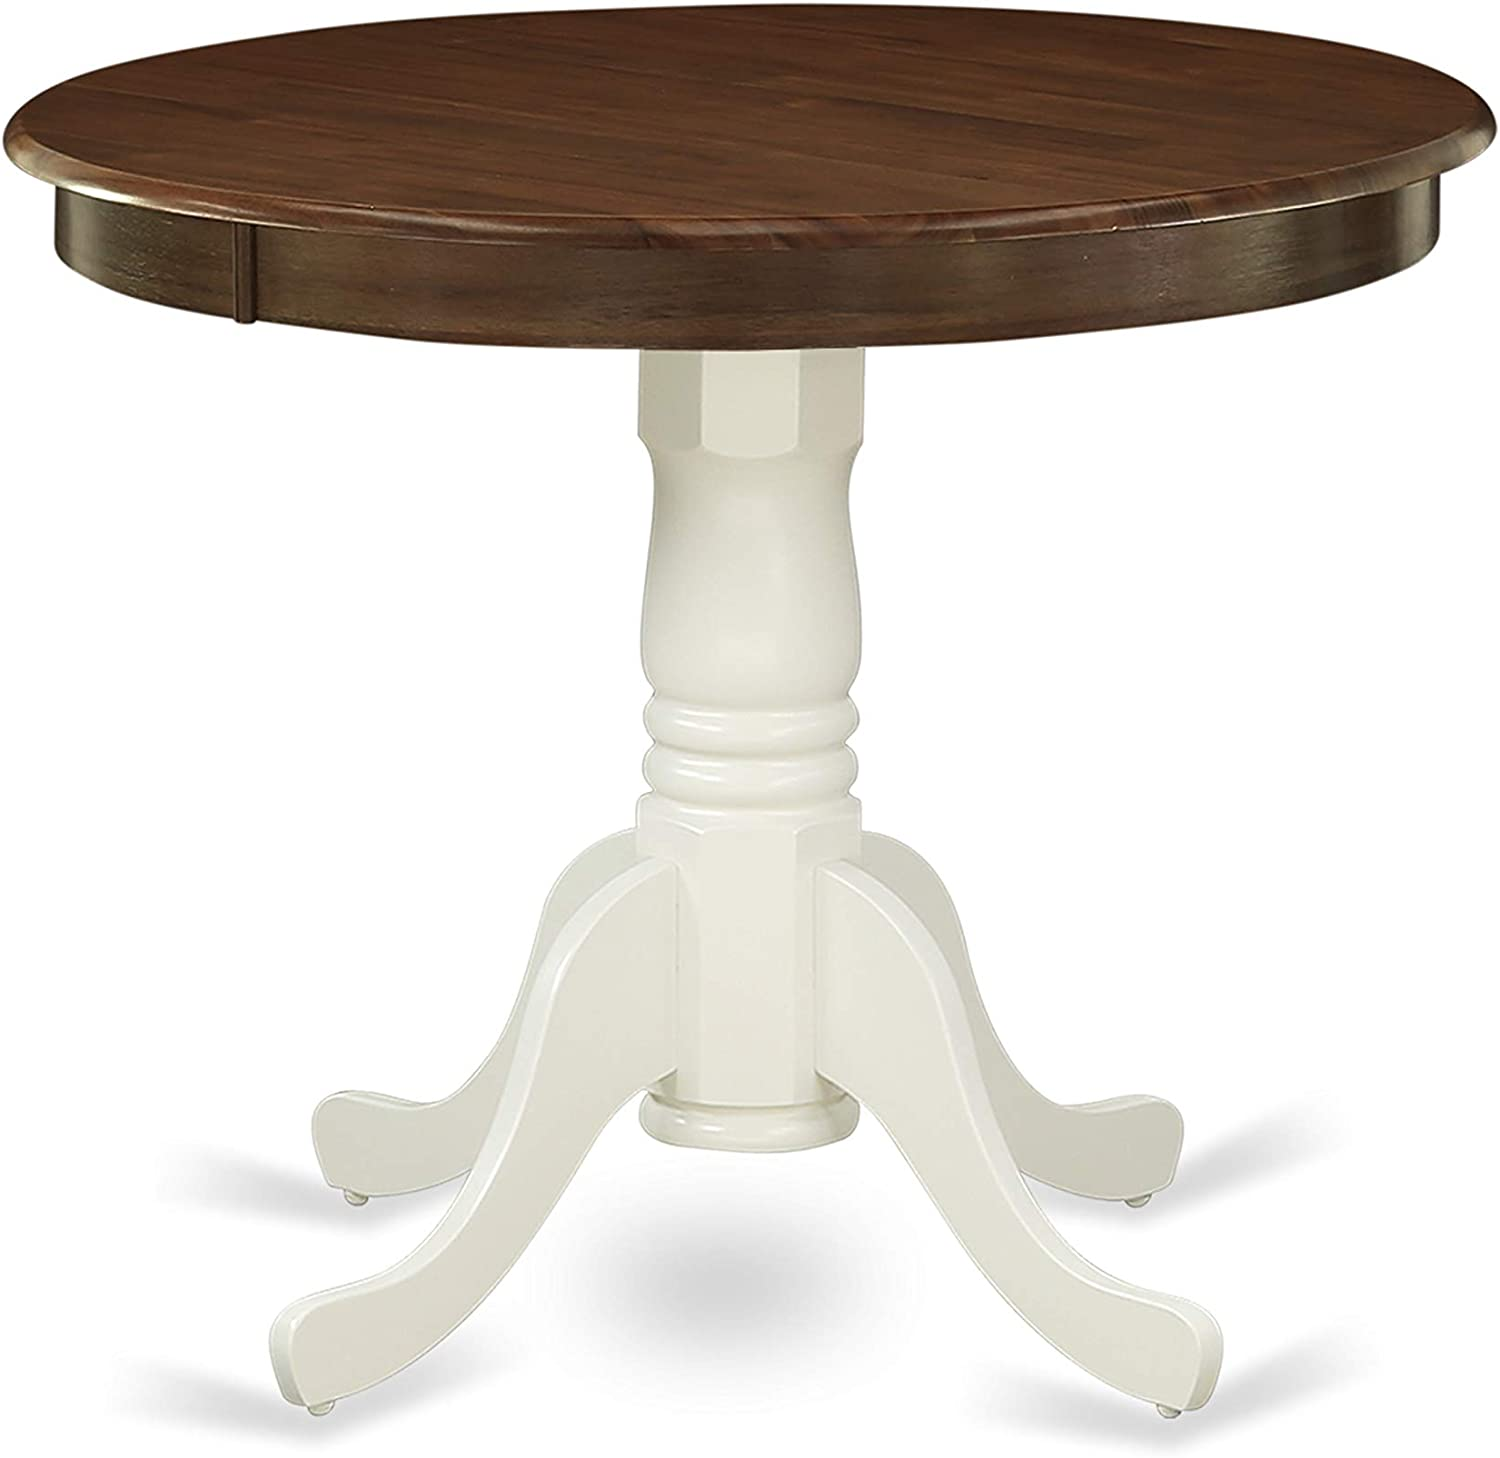 AMT-WLW-TP Antique Dining Table Made of Rubber Wood offering Walnut Finish Table Top, 36 Inch Round, Linen White Pedestal